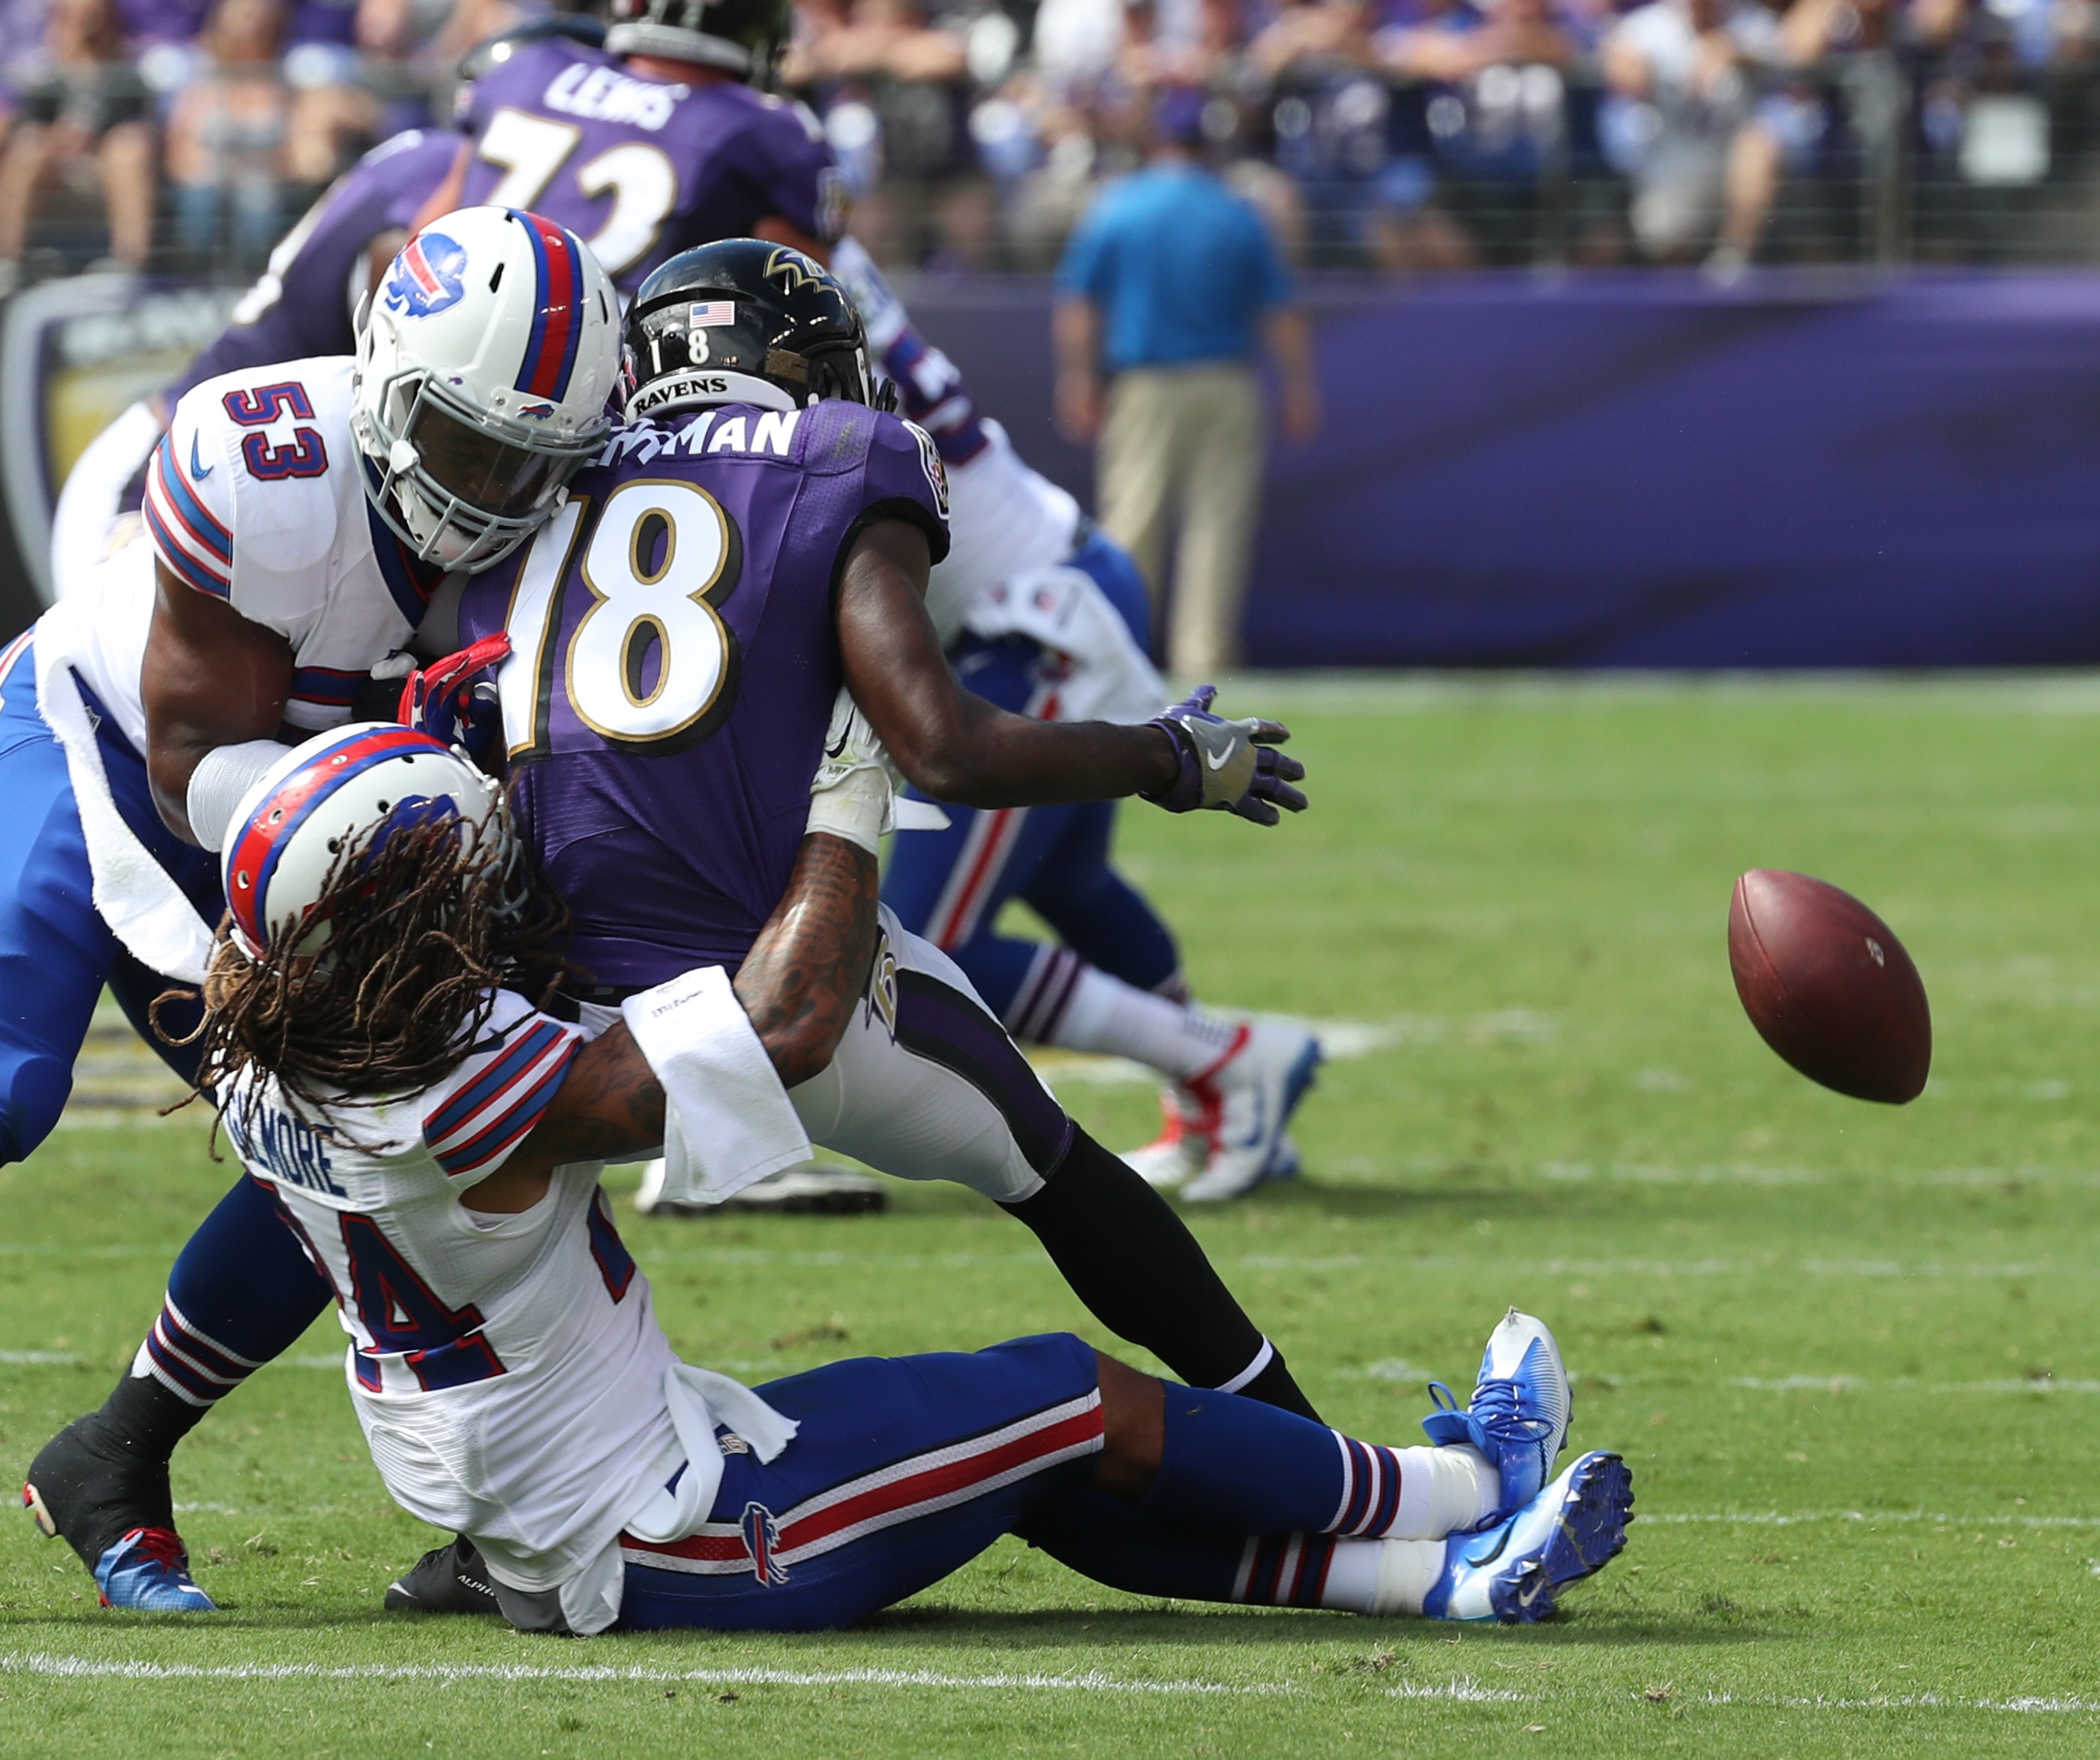 Stephon Gilmore (24) breaks up a pass intended for Ravens wide receiver Breshad Perriman.